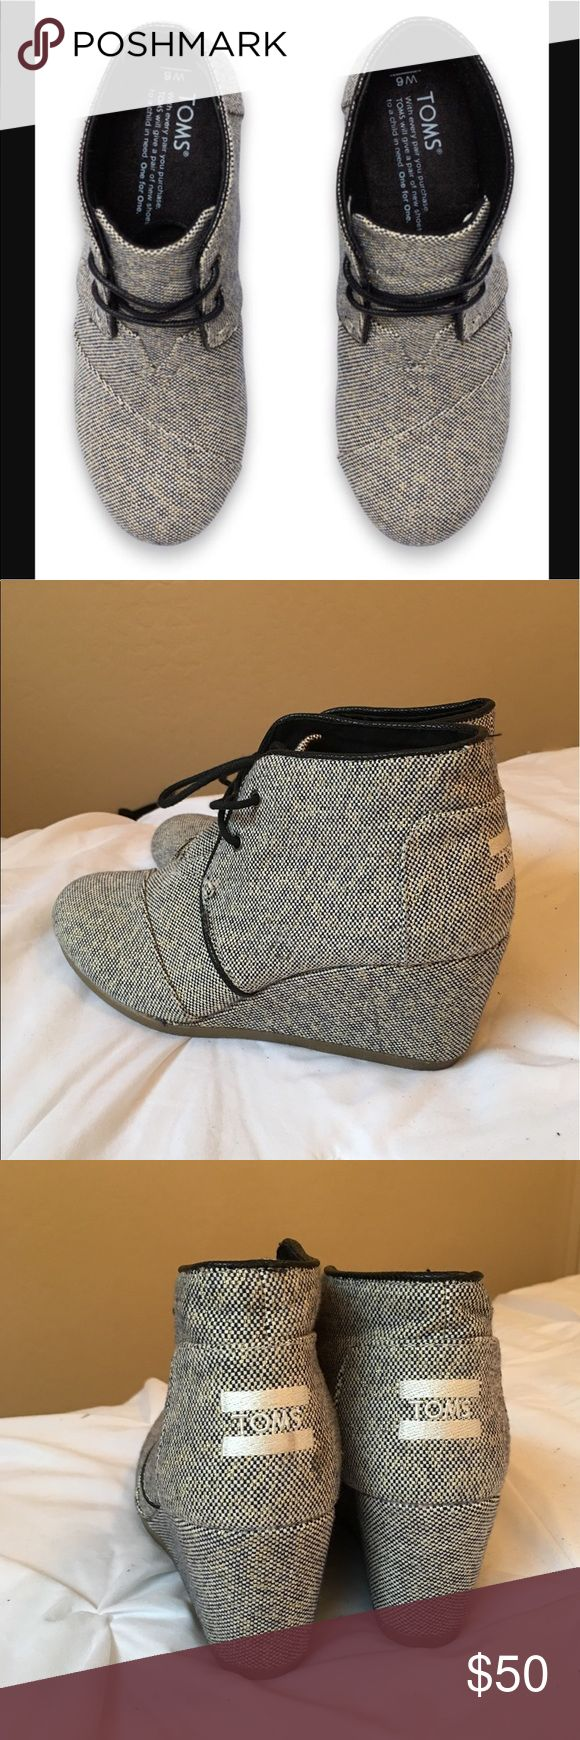 "NEW! Toms Castlerock Metallic Grey Desert Wedge New - never worn! Beautiful Castlerock metallic grey desert Wedge Bootie. Super comfortable and extremely beautiful! 2 1/2"" Wedge. If you own any toms, then you already know how comfortable these are! Get them at this hot off season price while you can! Let me know if you have any questions! Toms Shoes Ankle Boots & Booties"